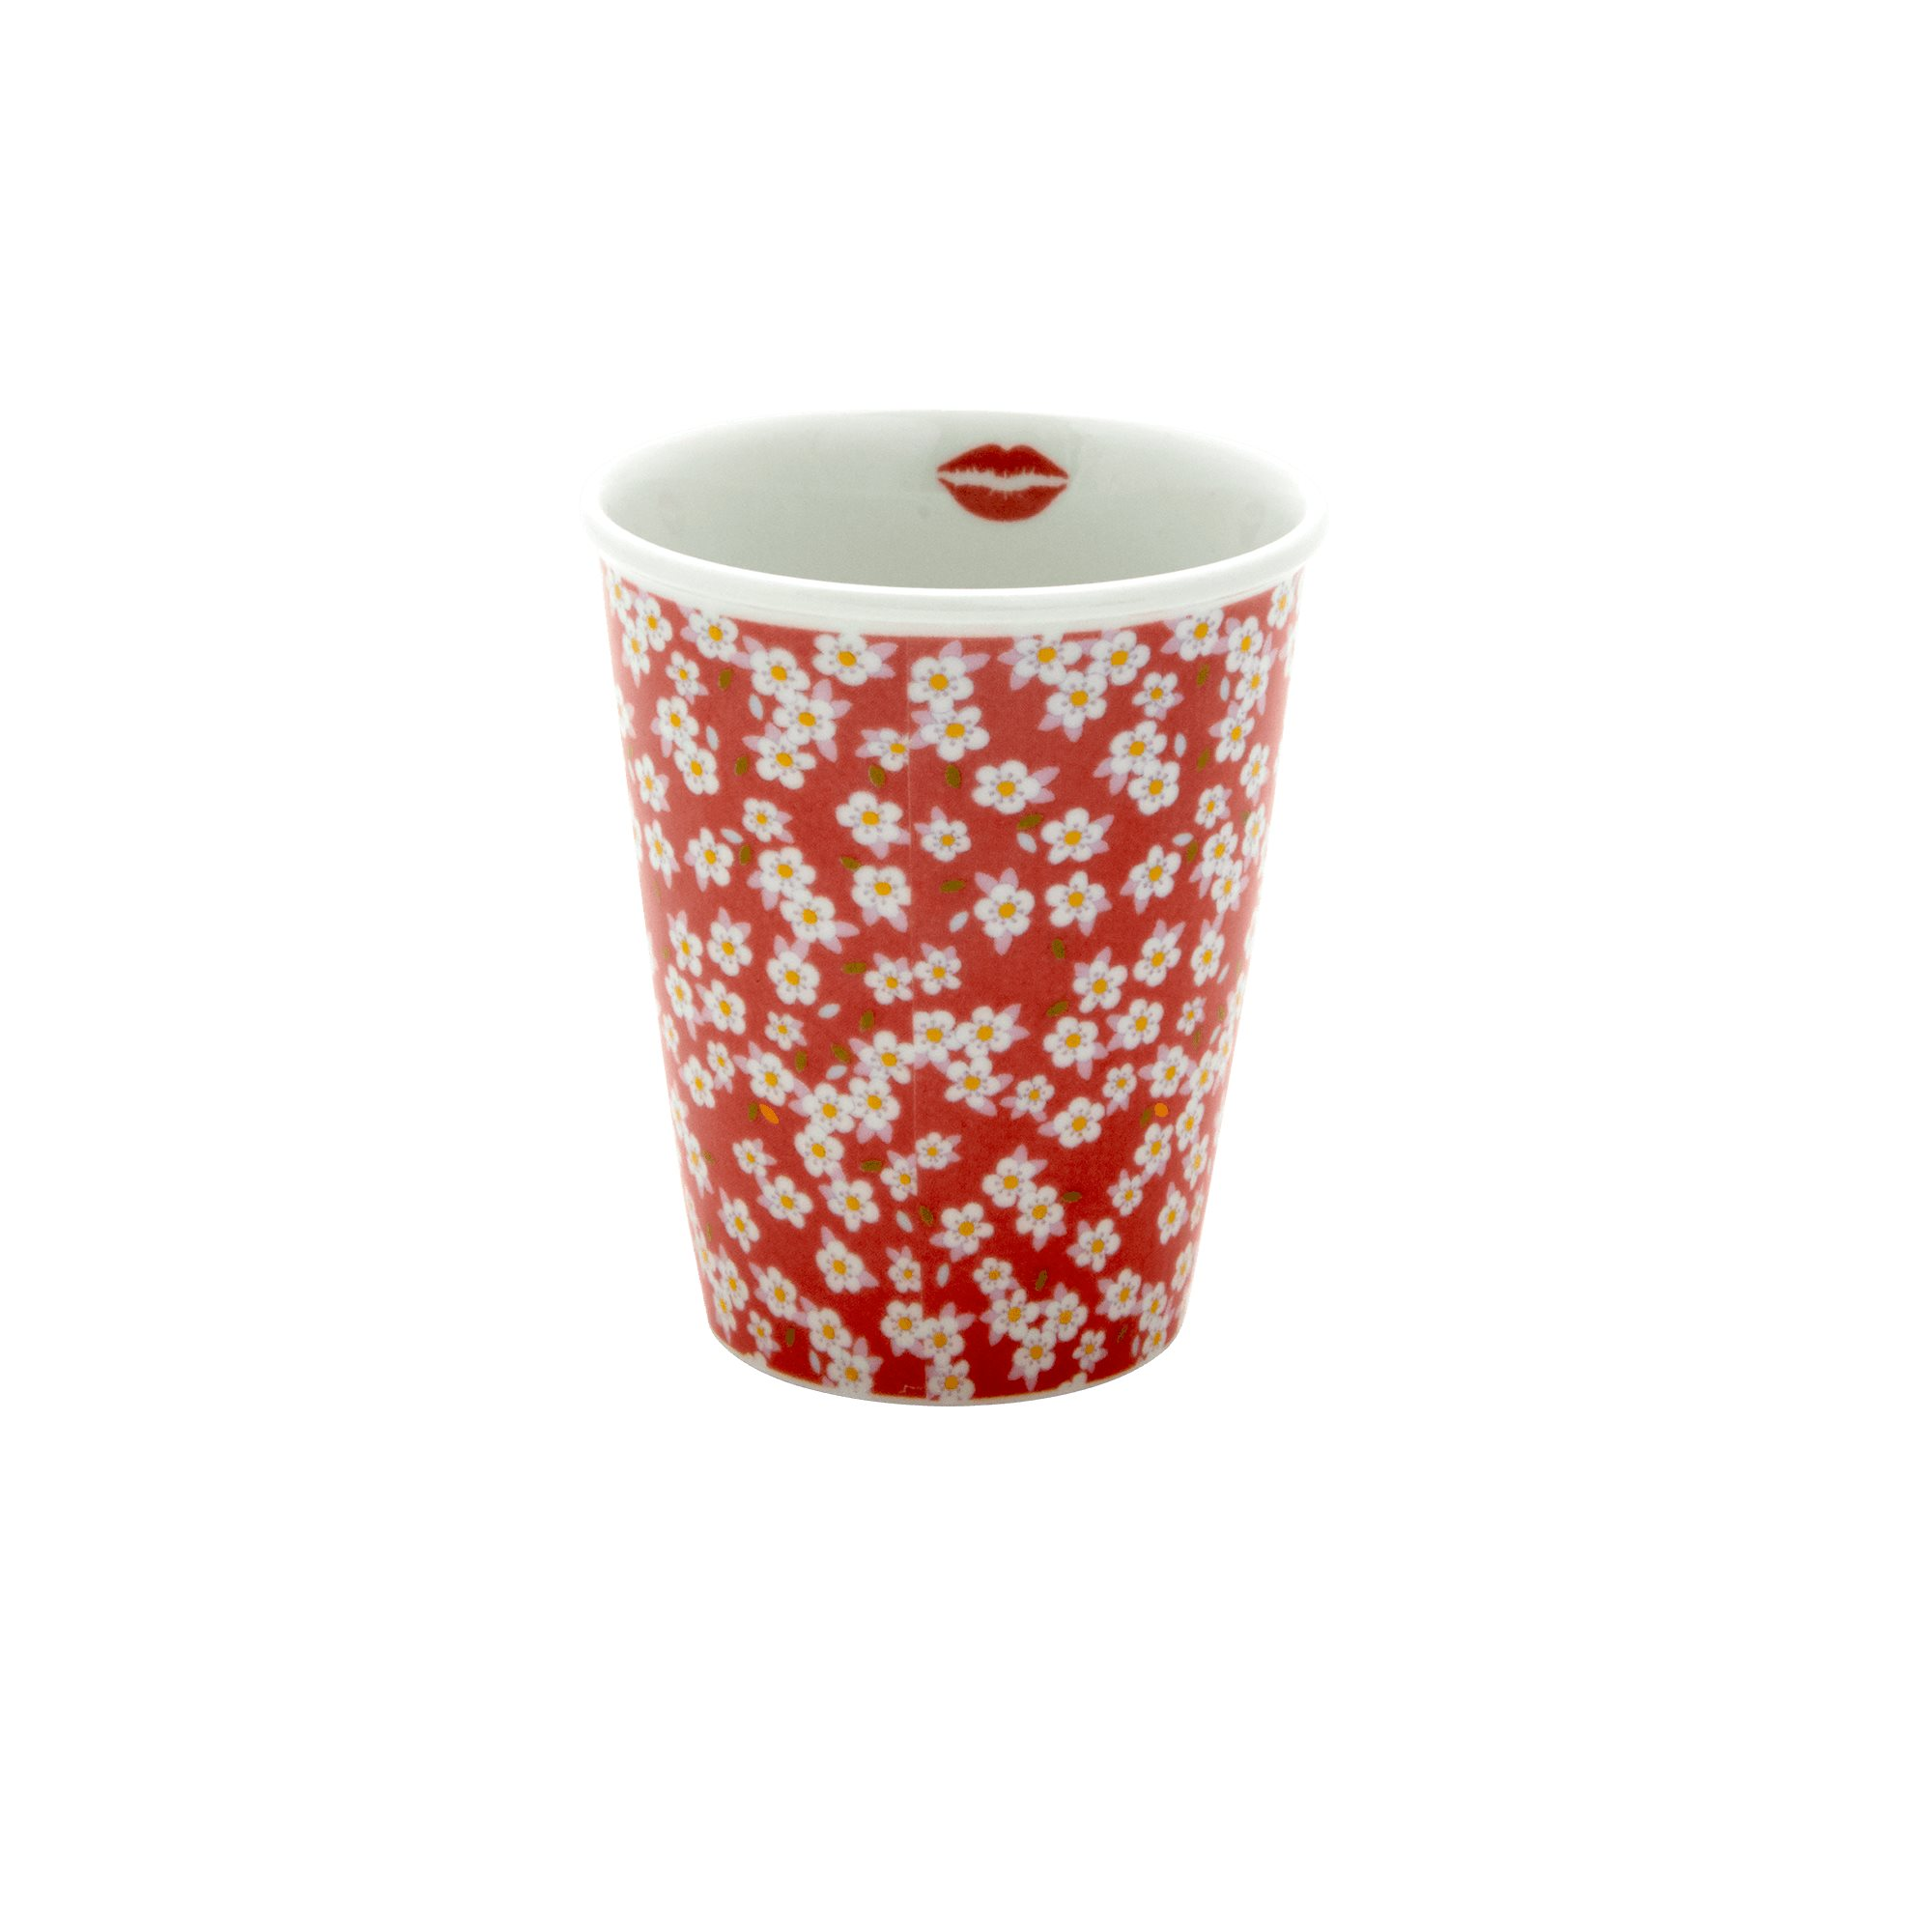 Porcelain Cup - Small Flower Print - rice